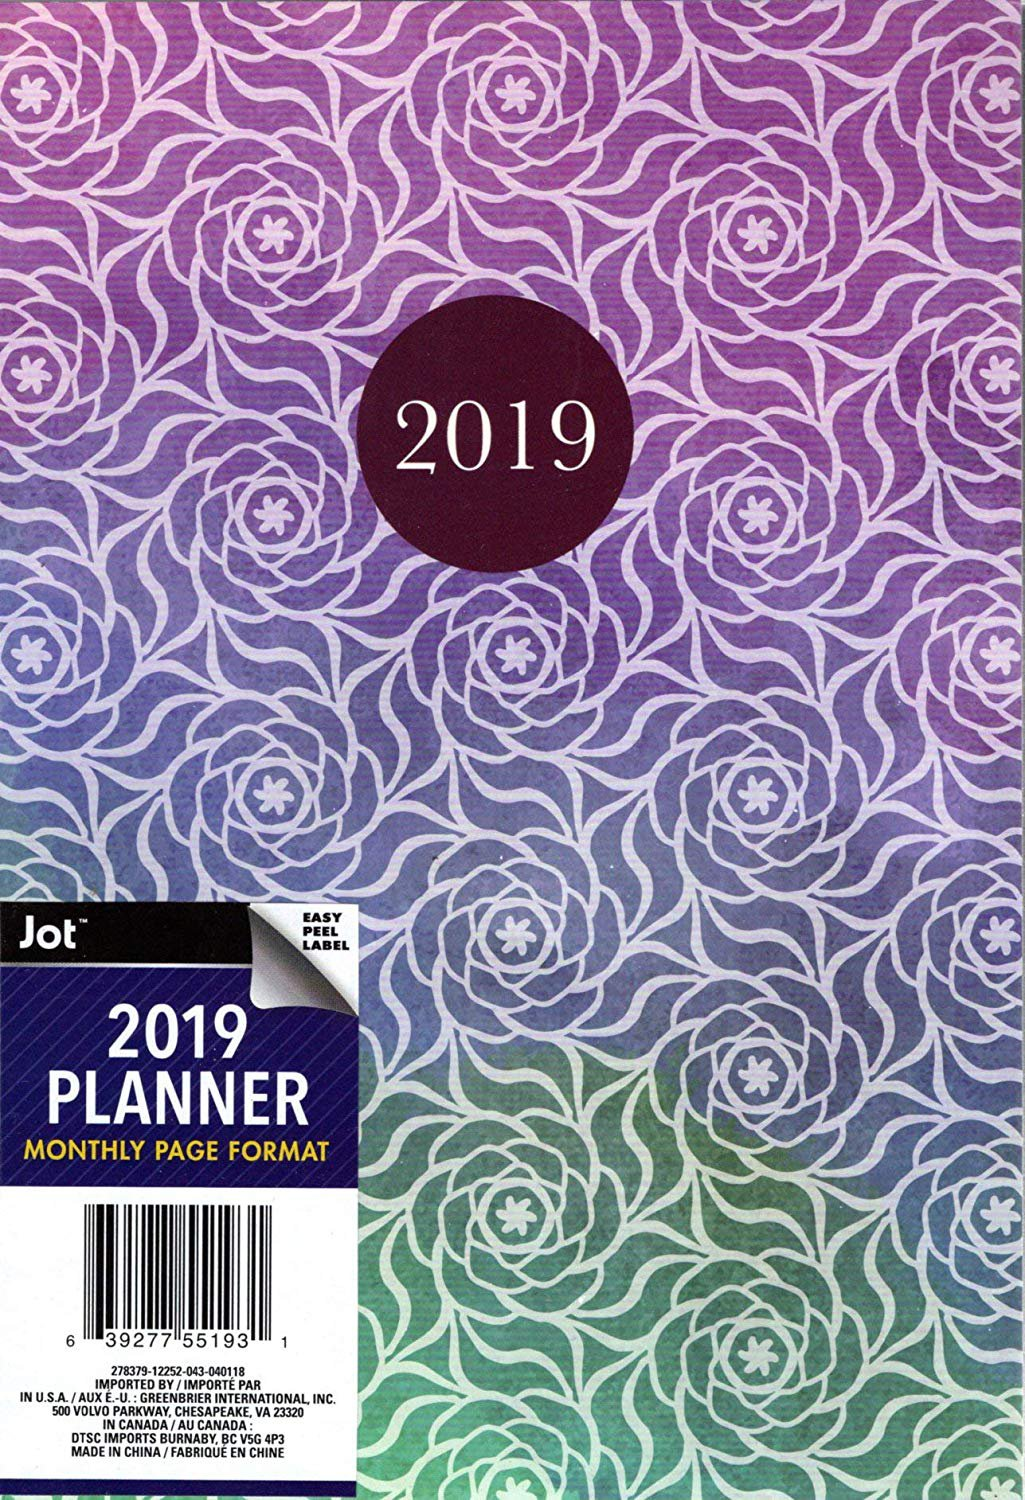 2019 Personal Monthly Planner/Calendar / Organizer - Monthly Page Format - v3